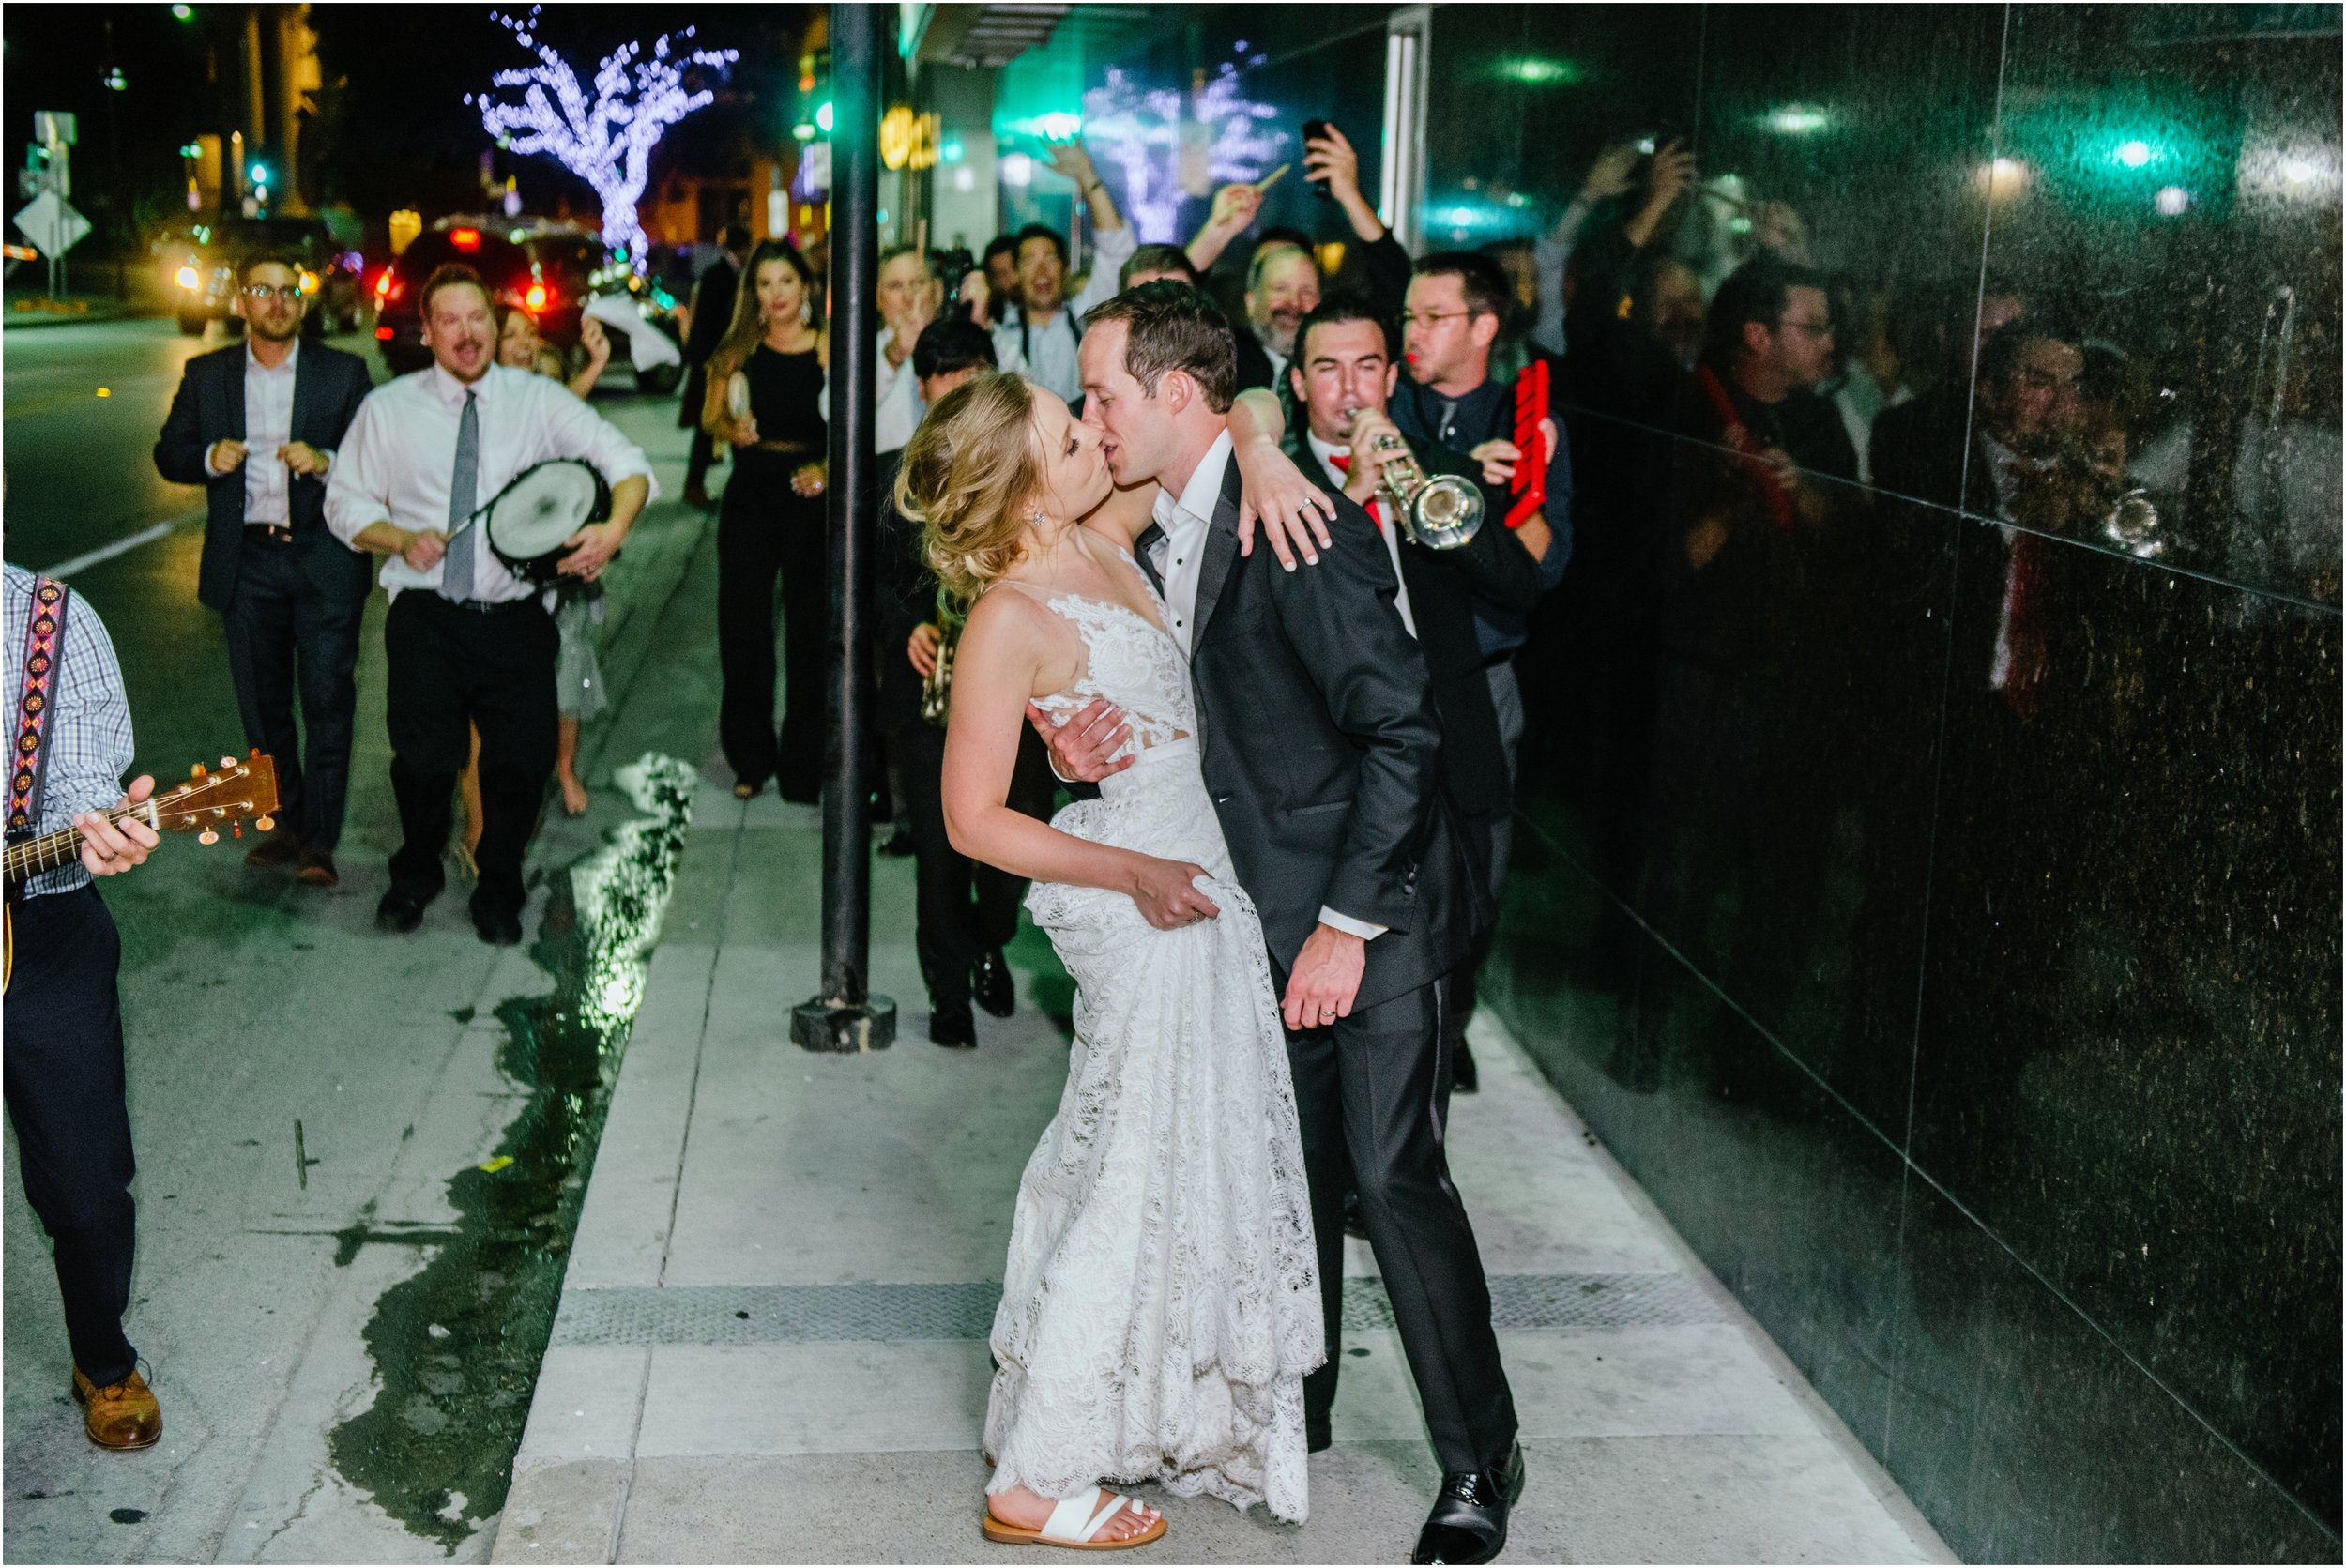 dallasweddingphotographer_fortworthweddingphotographer_texasweddingphotographer_mattandjulieweddings_Lauren+Andy_0093.jpg